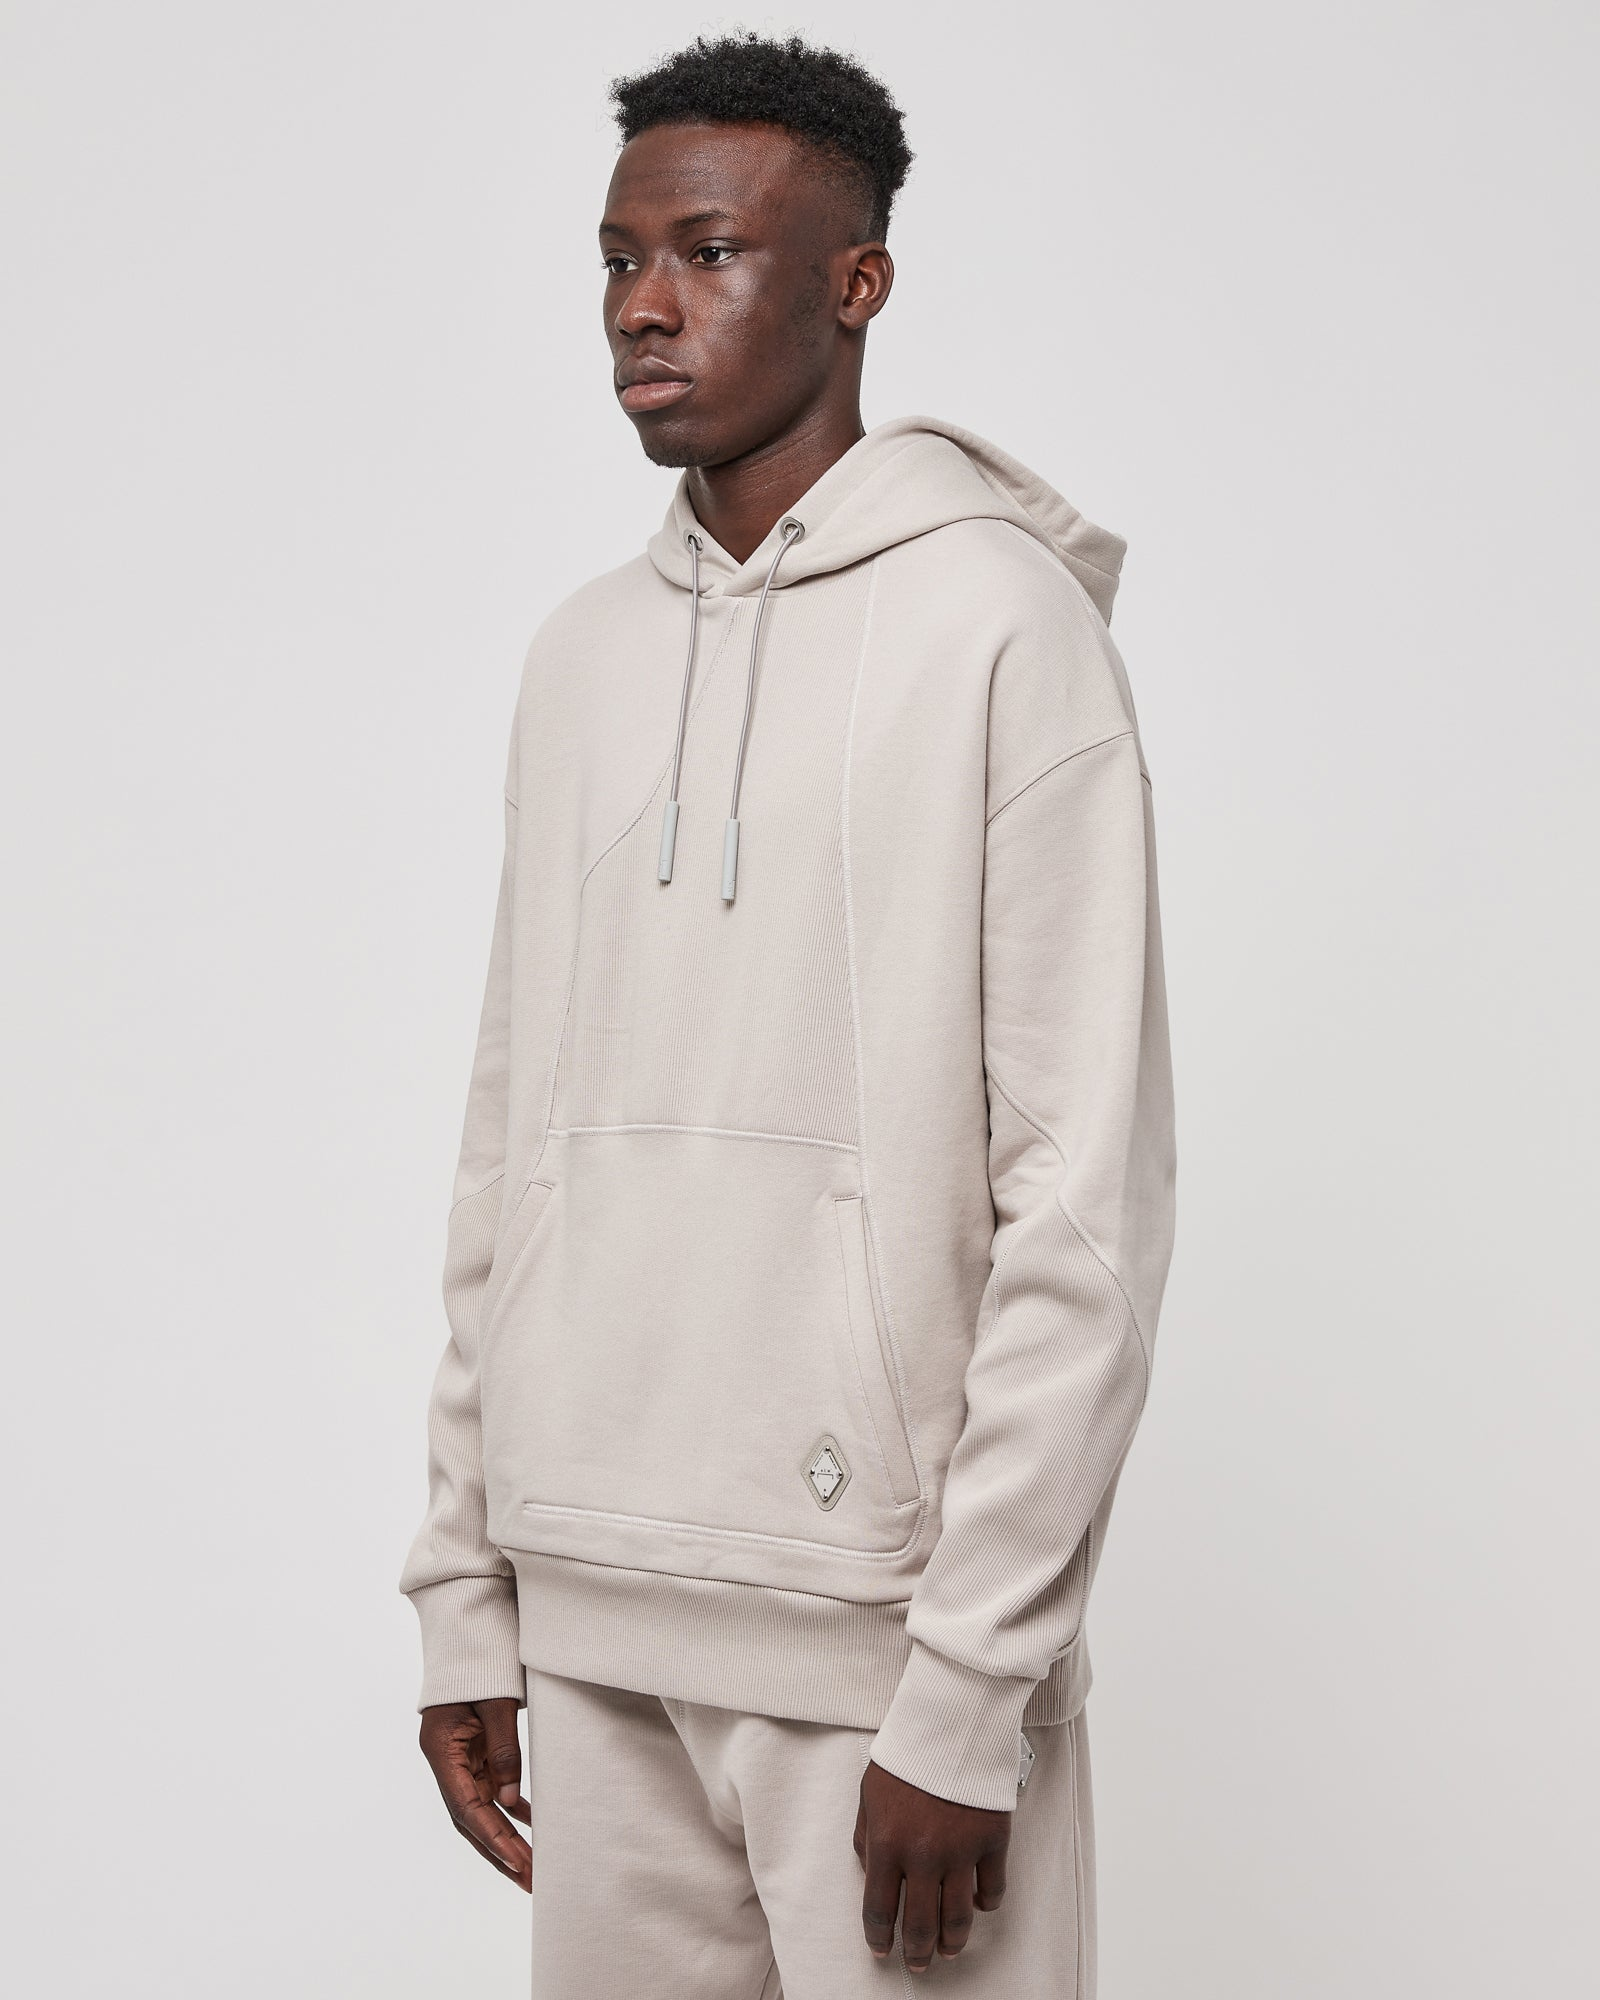 Contour Line Hoodie in Cement